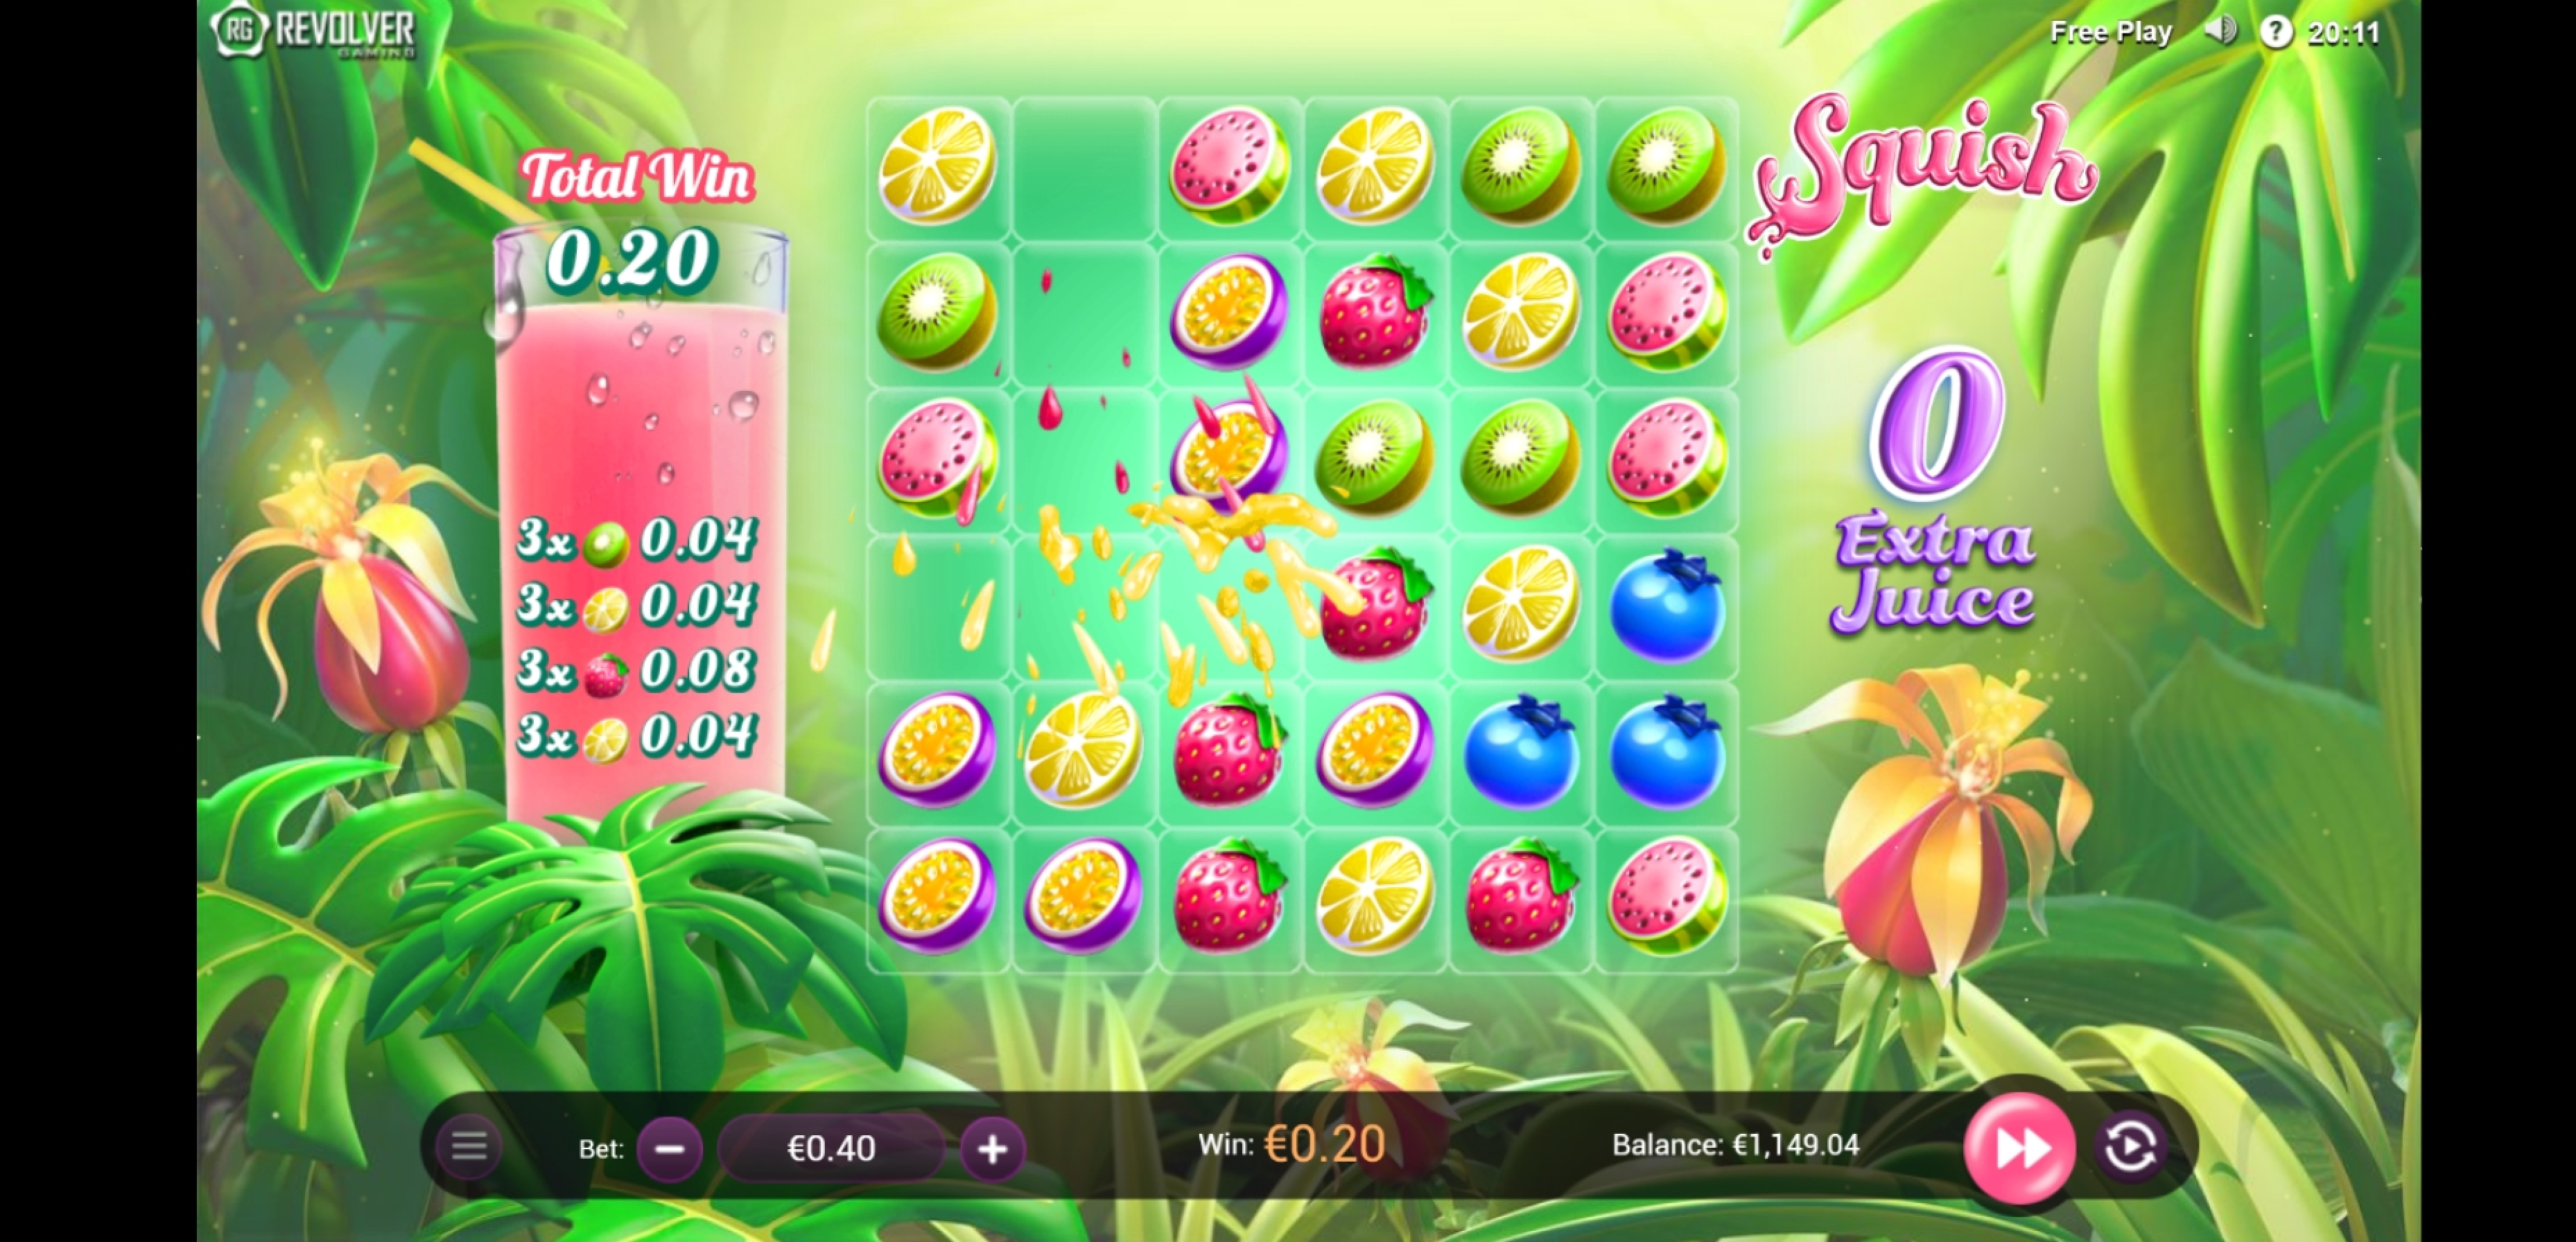 Win Money in Squish Free Slot Game by Revolver Gaming